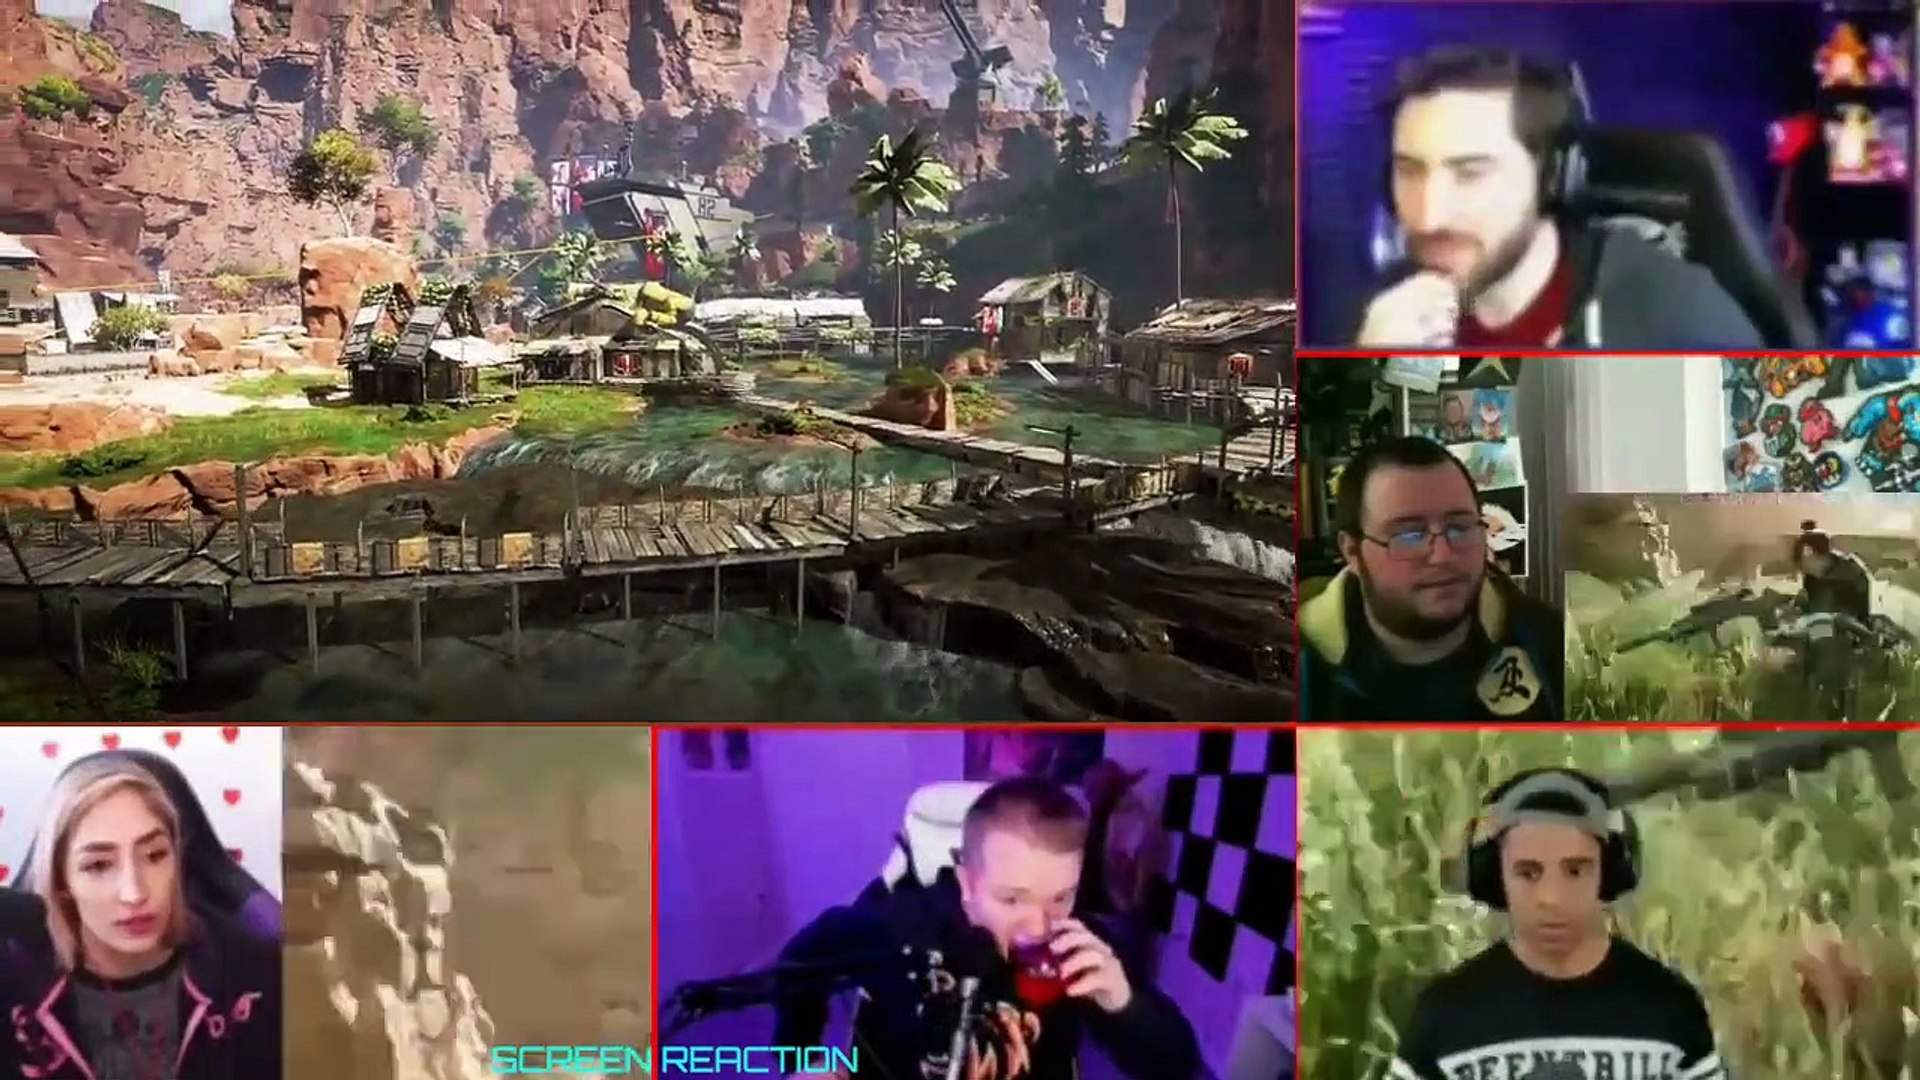 Apex Legends - Official Gameplay Deep Dive Trailer - Titanfall Battle Royale REACTION MASHUP